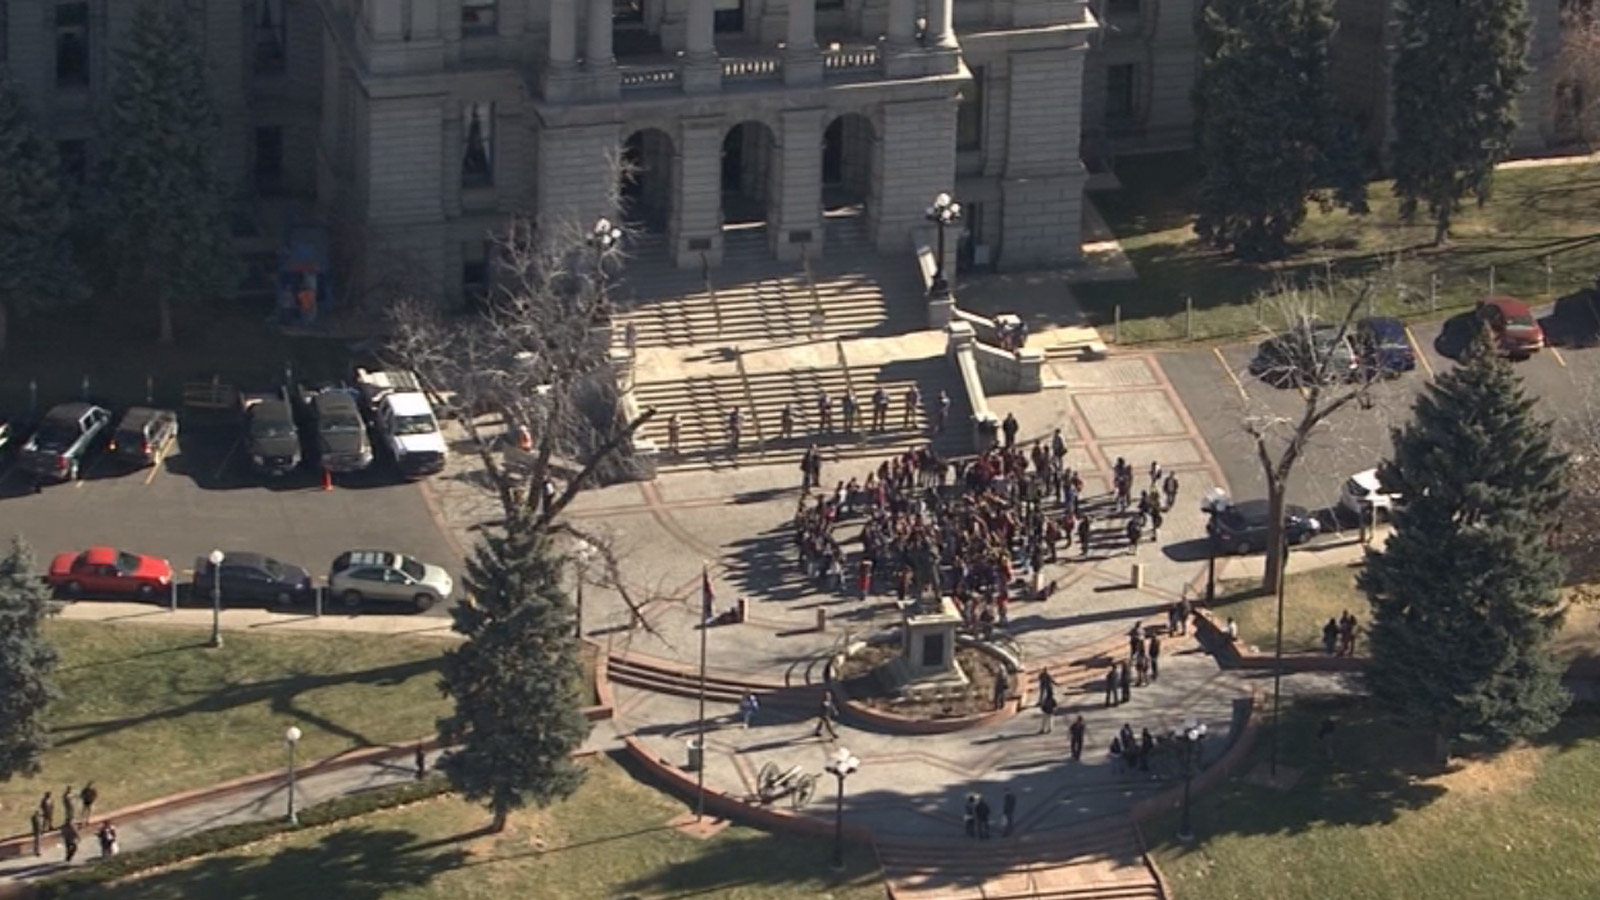 Copter4 flew over a small crowd of protesters at the state Capitol on Friday morning (credit: CBS)